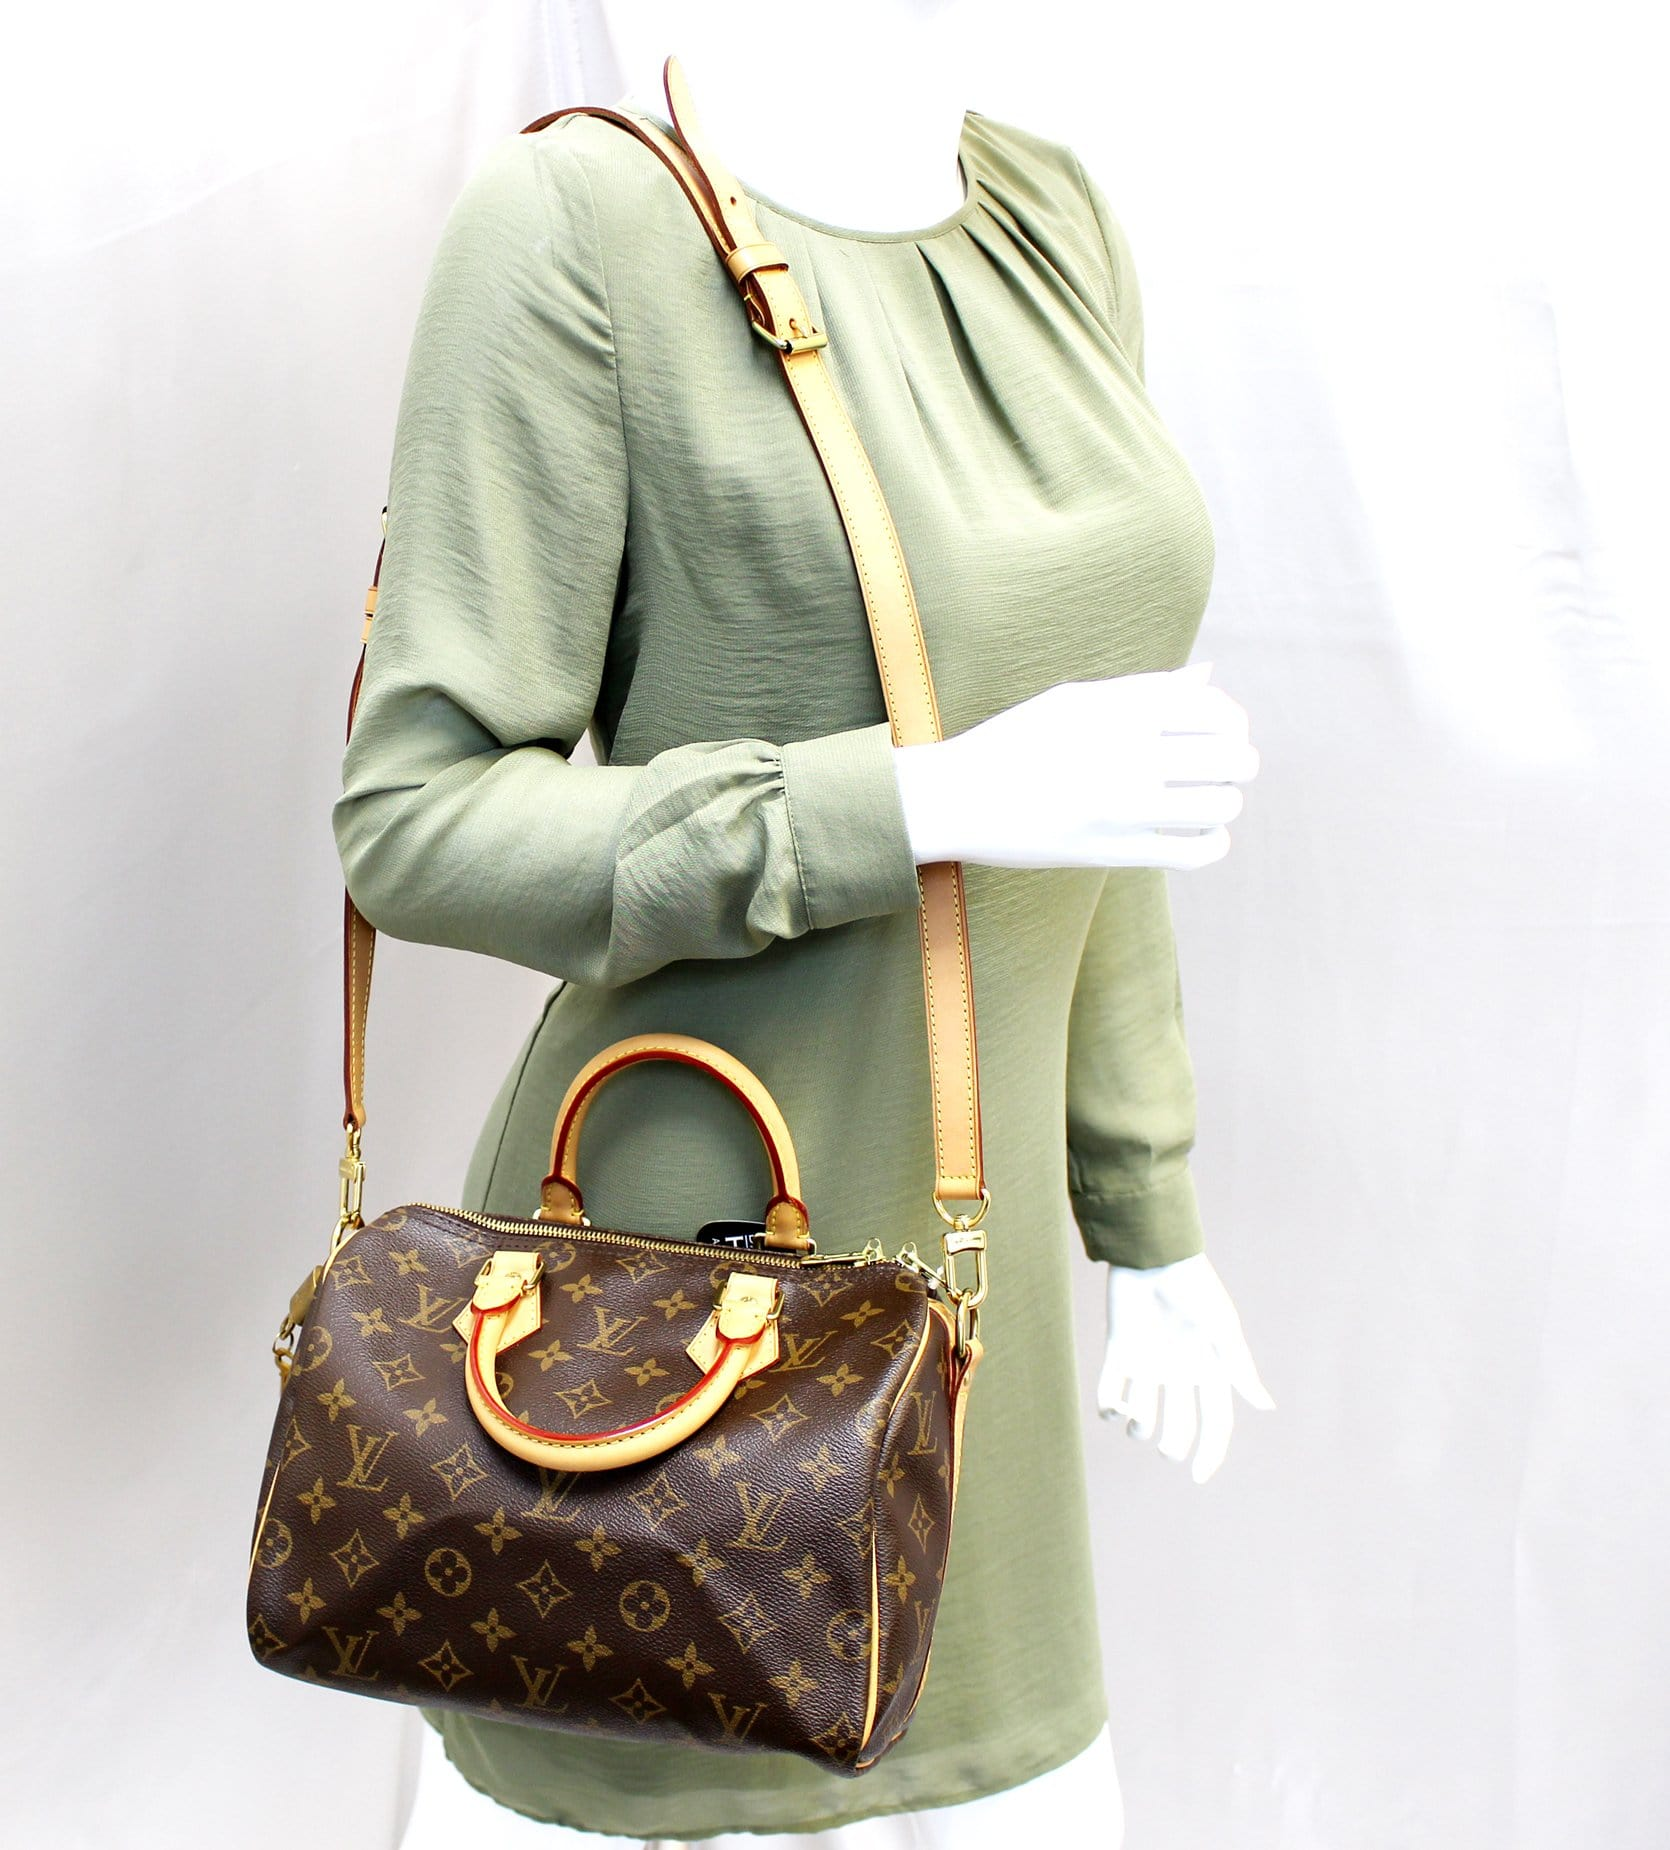 44be617cefcf Authentic LOUIS VUITTON Monogram Speedy 25 Bandouliere Satchel Bag TT1